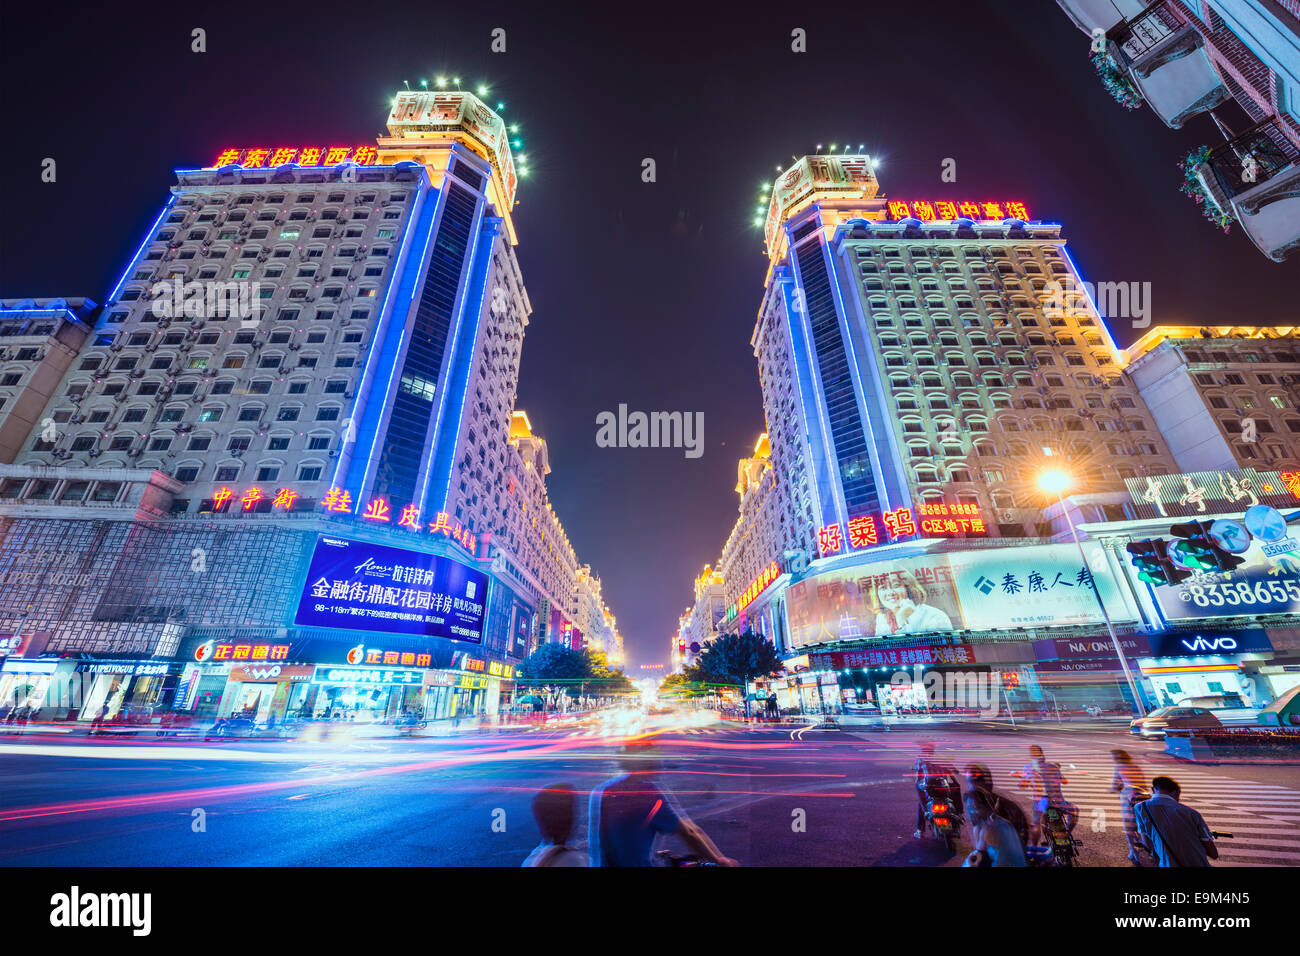 FUZHOU, CHINA - JUNE 16, 2014: Bayiqi Street at night. The street is the oldest shopping district in the city. - Stock Image